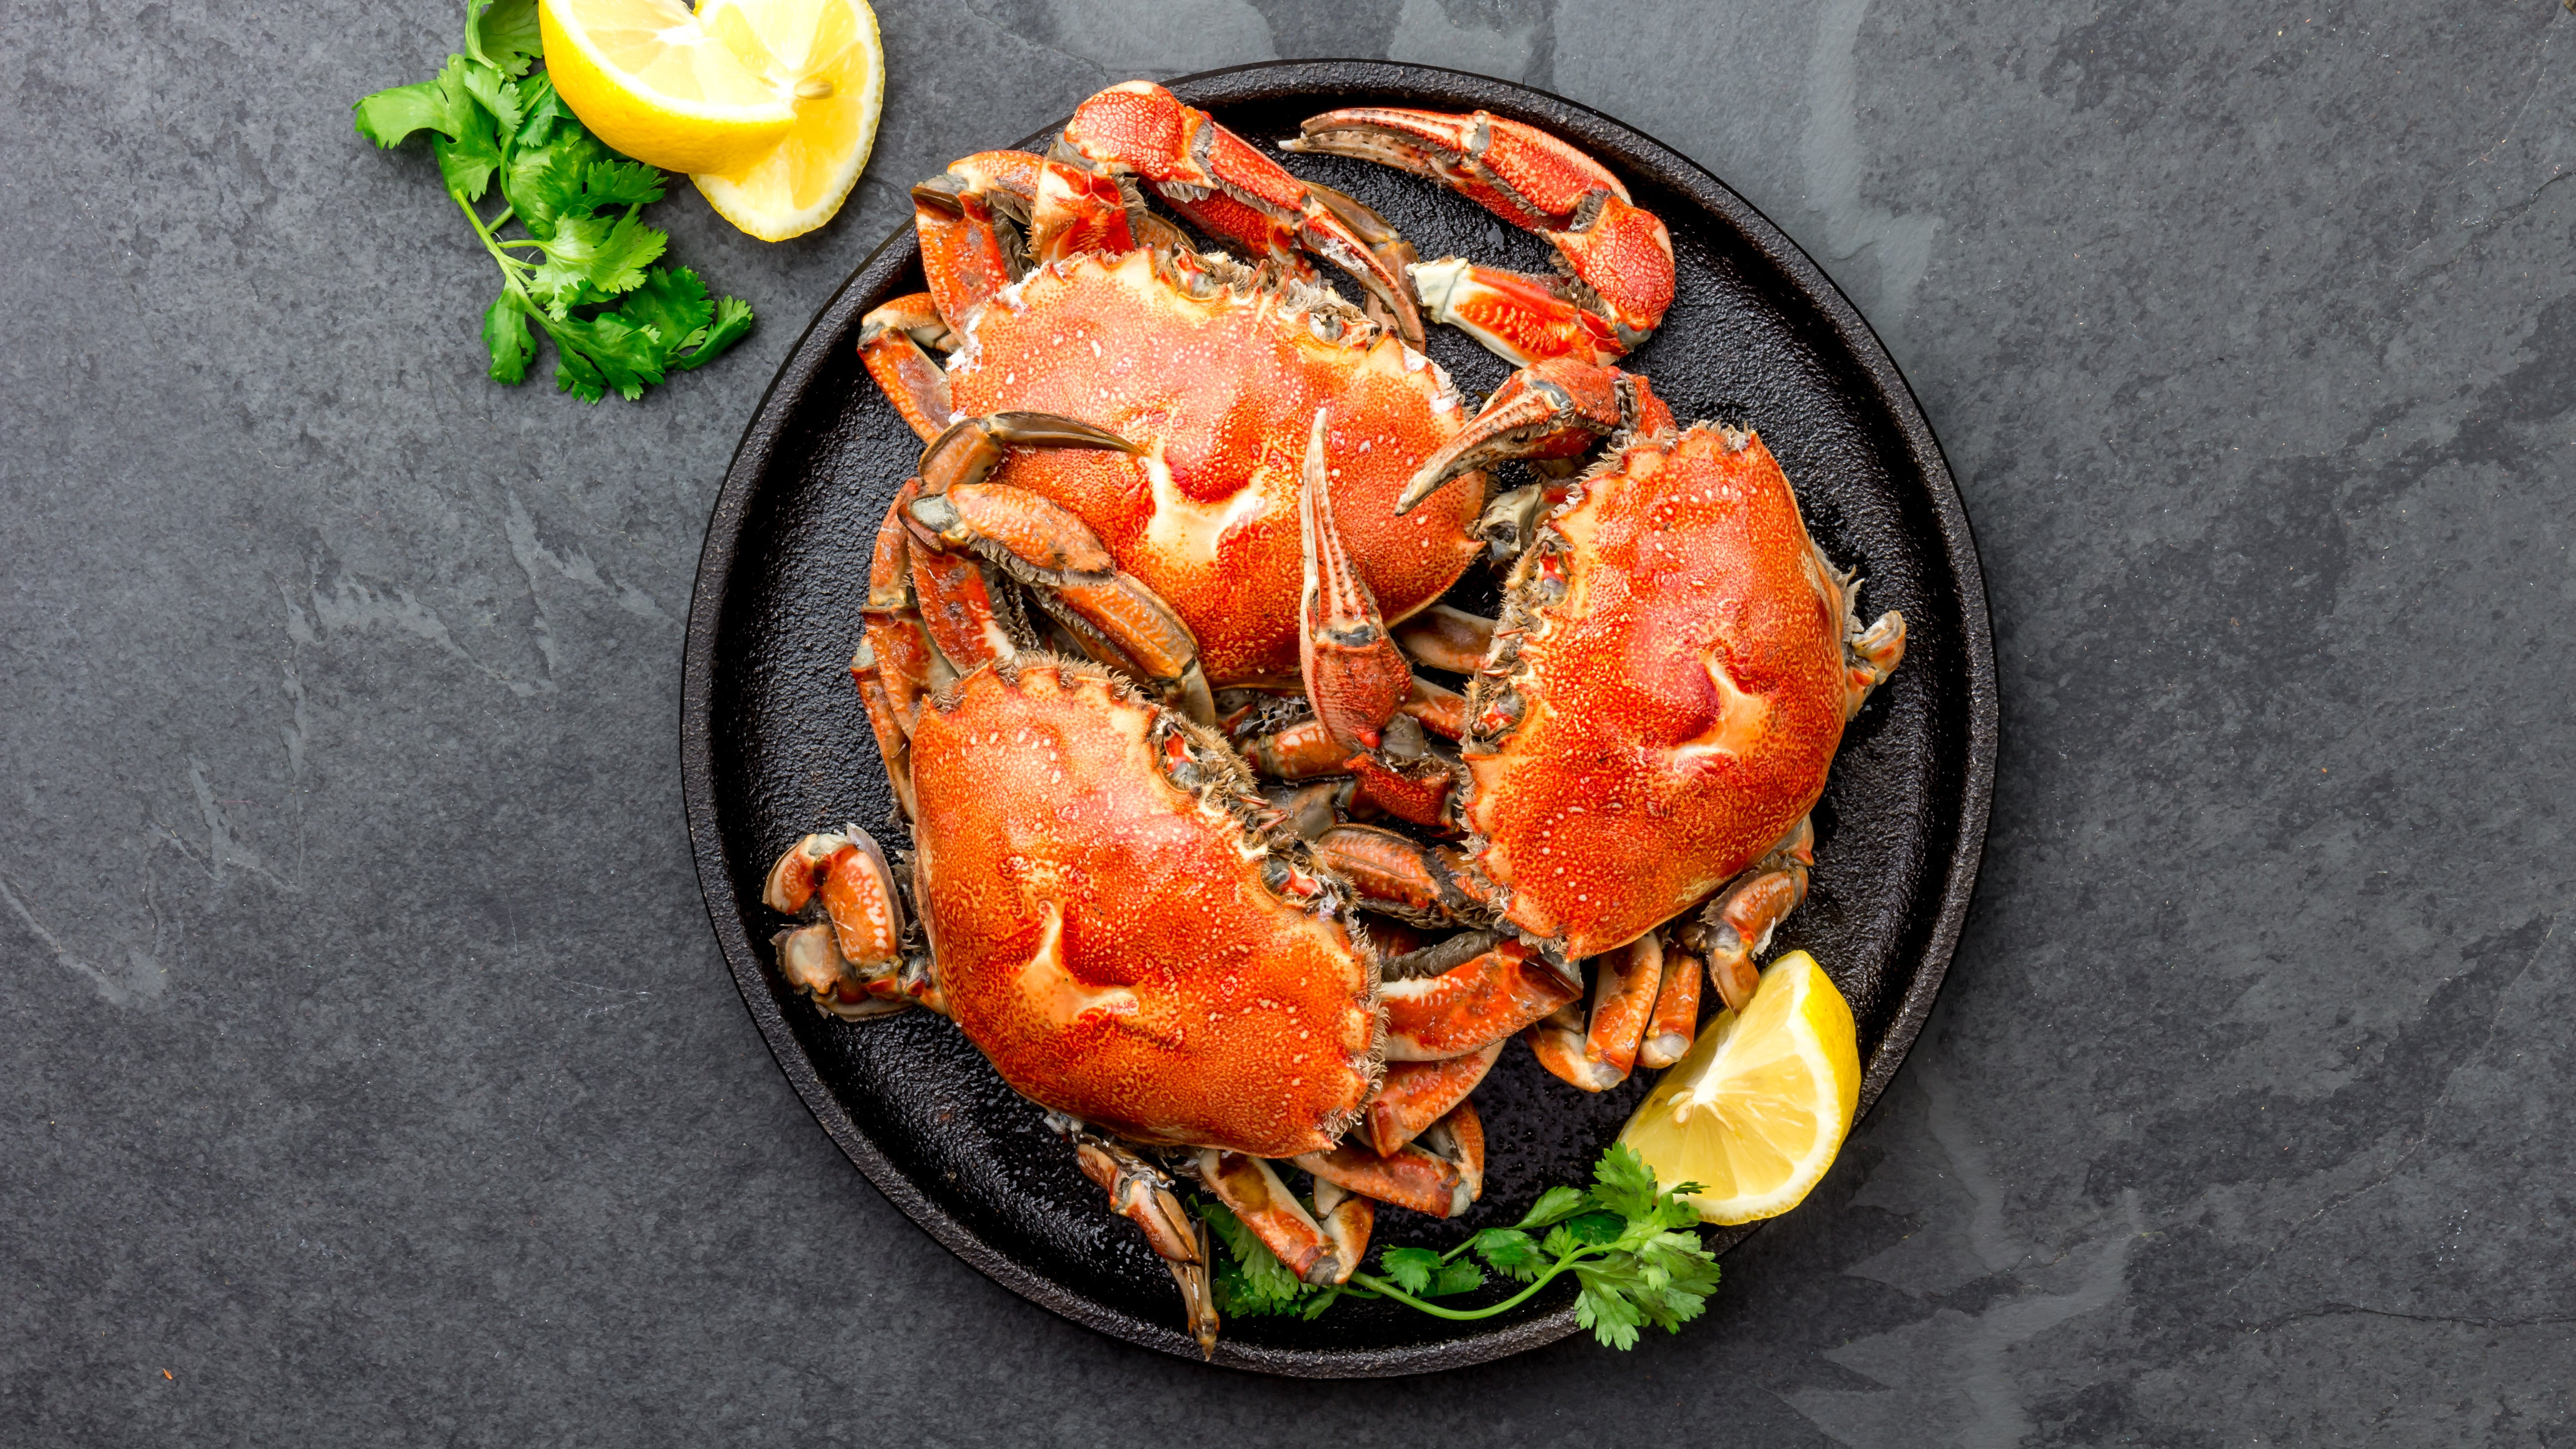 Precision Cooking Is The Perfect Way To Prepare Crab